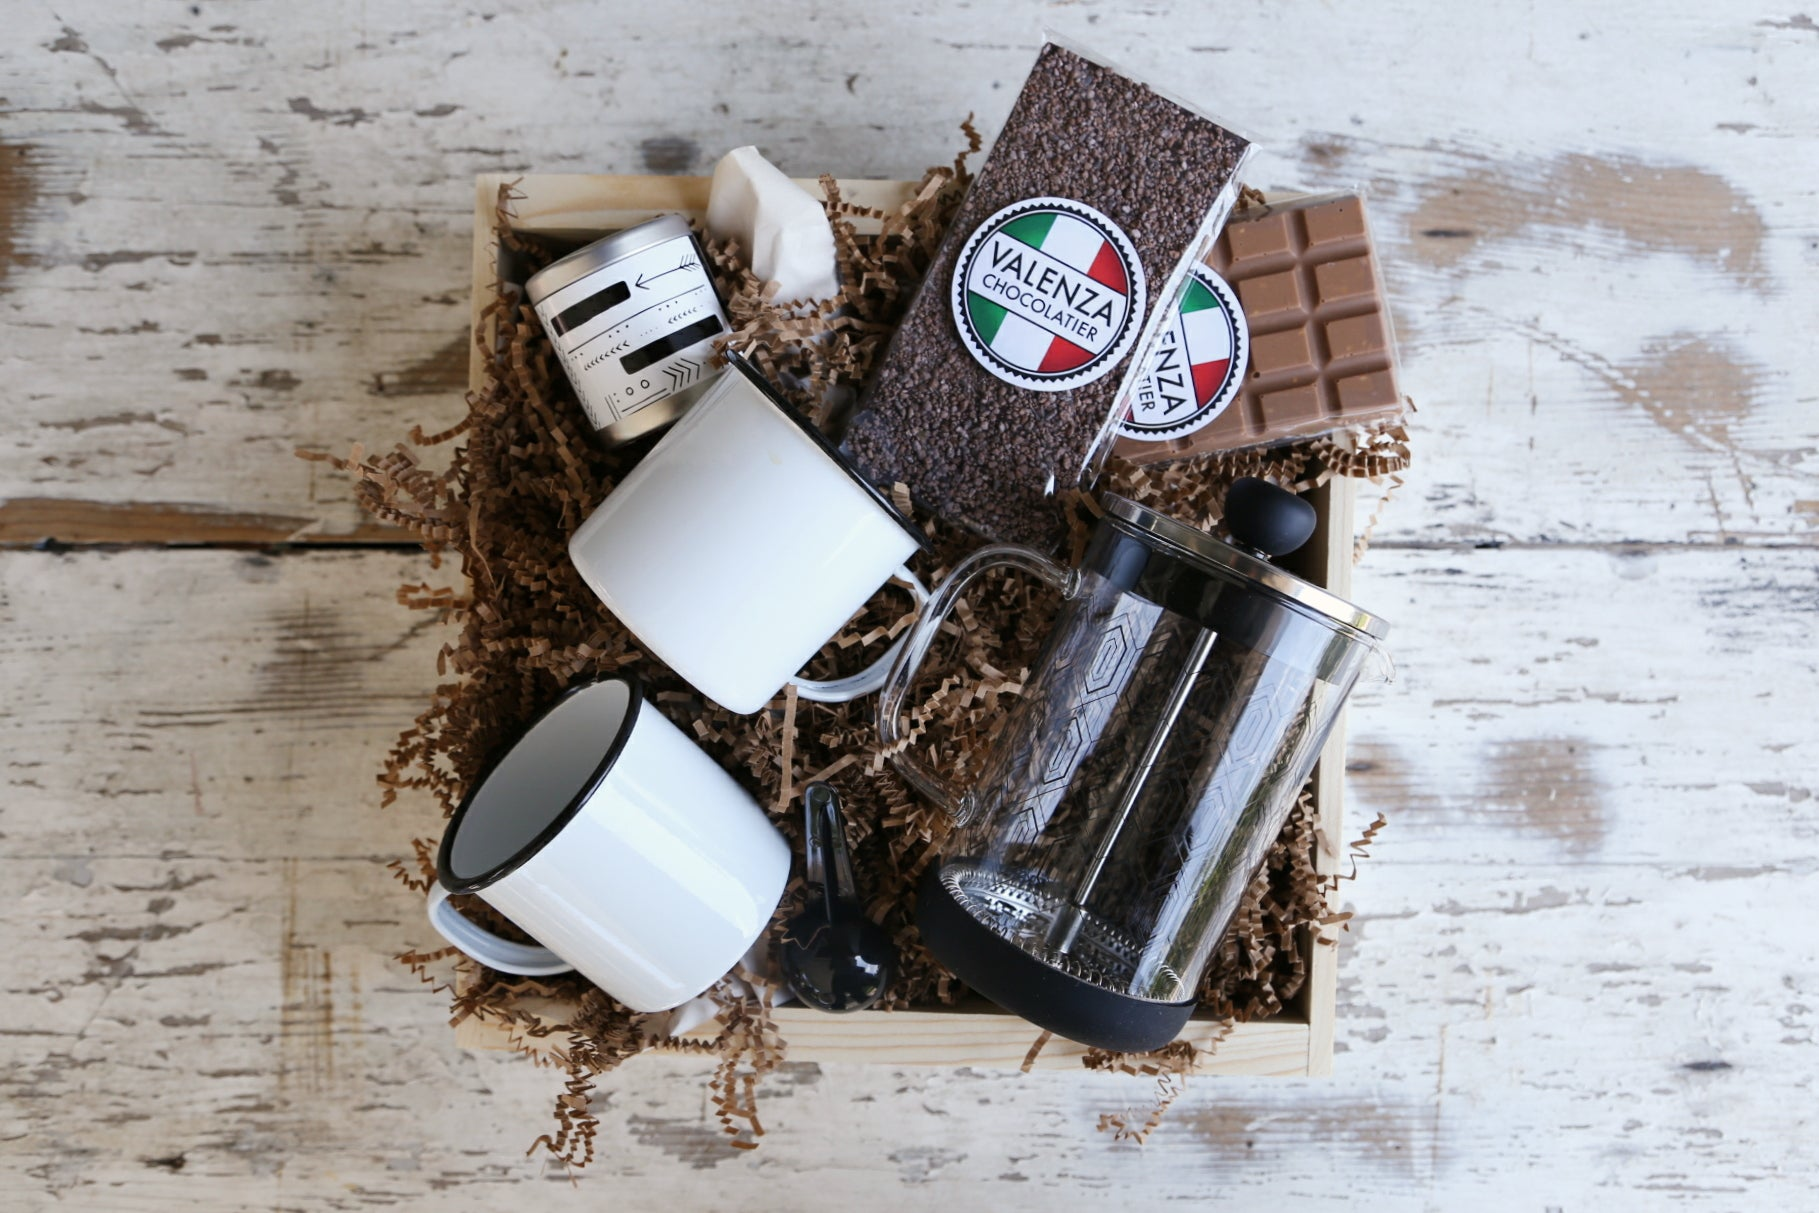 Chocolate & French Press: this gift features a designer glass french press, two bars of rich Valenza chocolate, two enamel mugs & a candle tin. $65